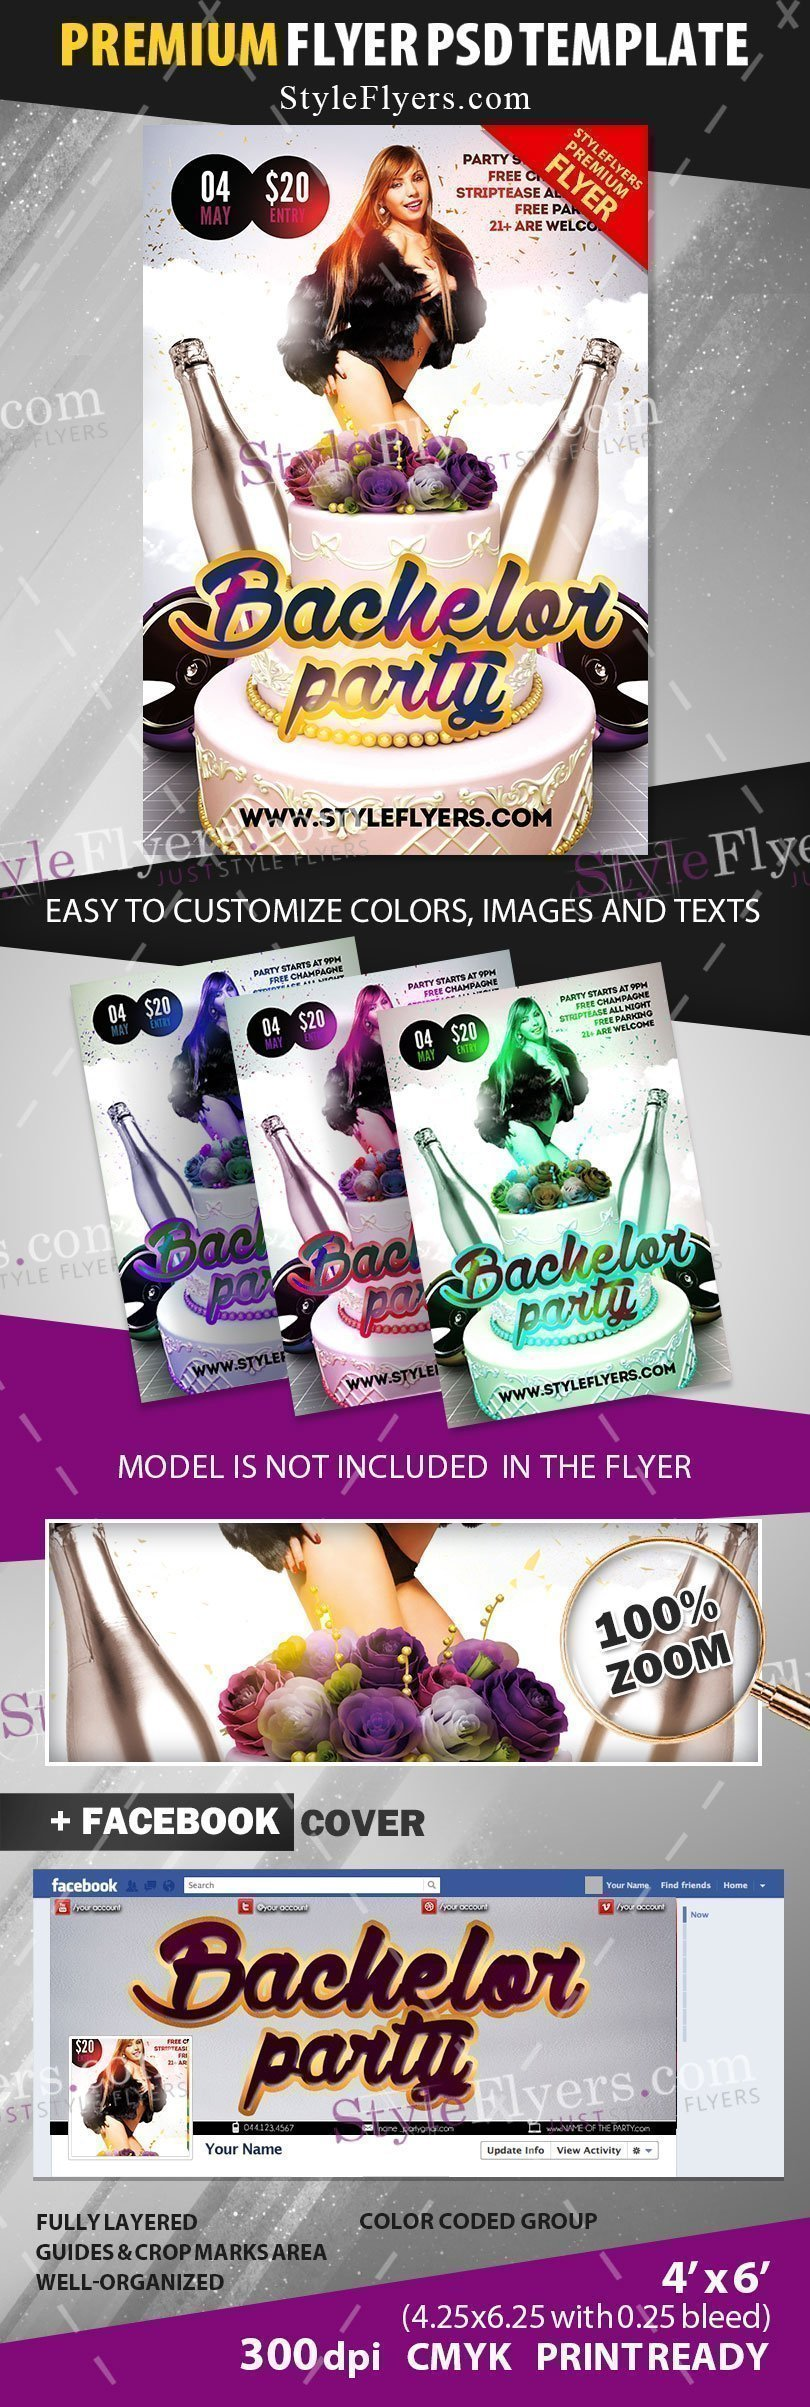 preview_Bachelor_party_Flyer_premium_template